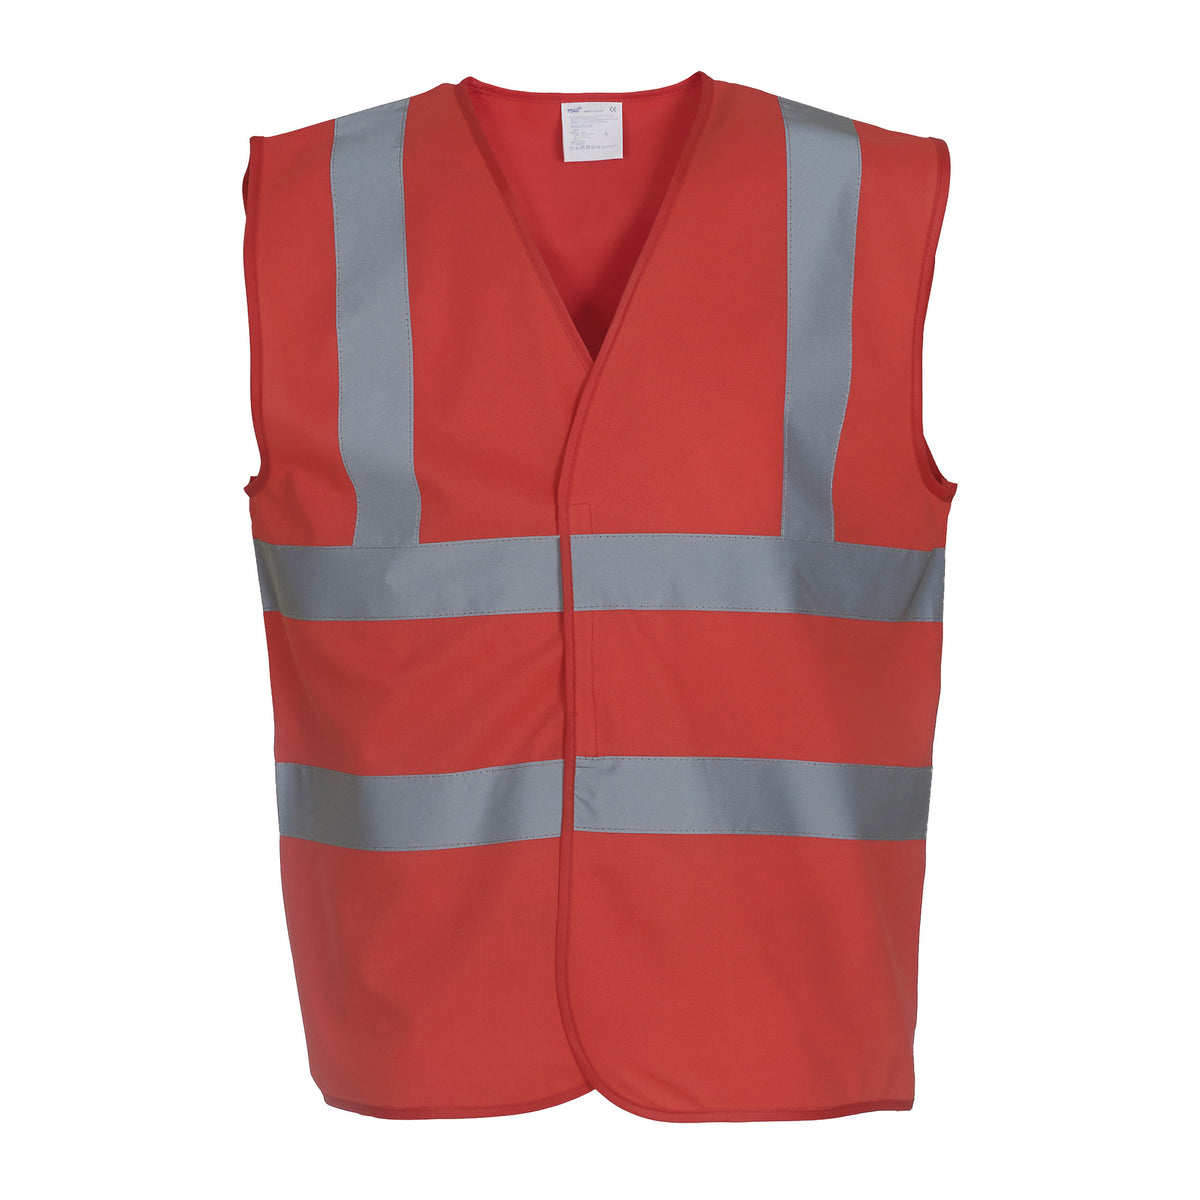 Enhanced Visibility Vest - peterdrew.com  - 5